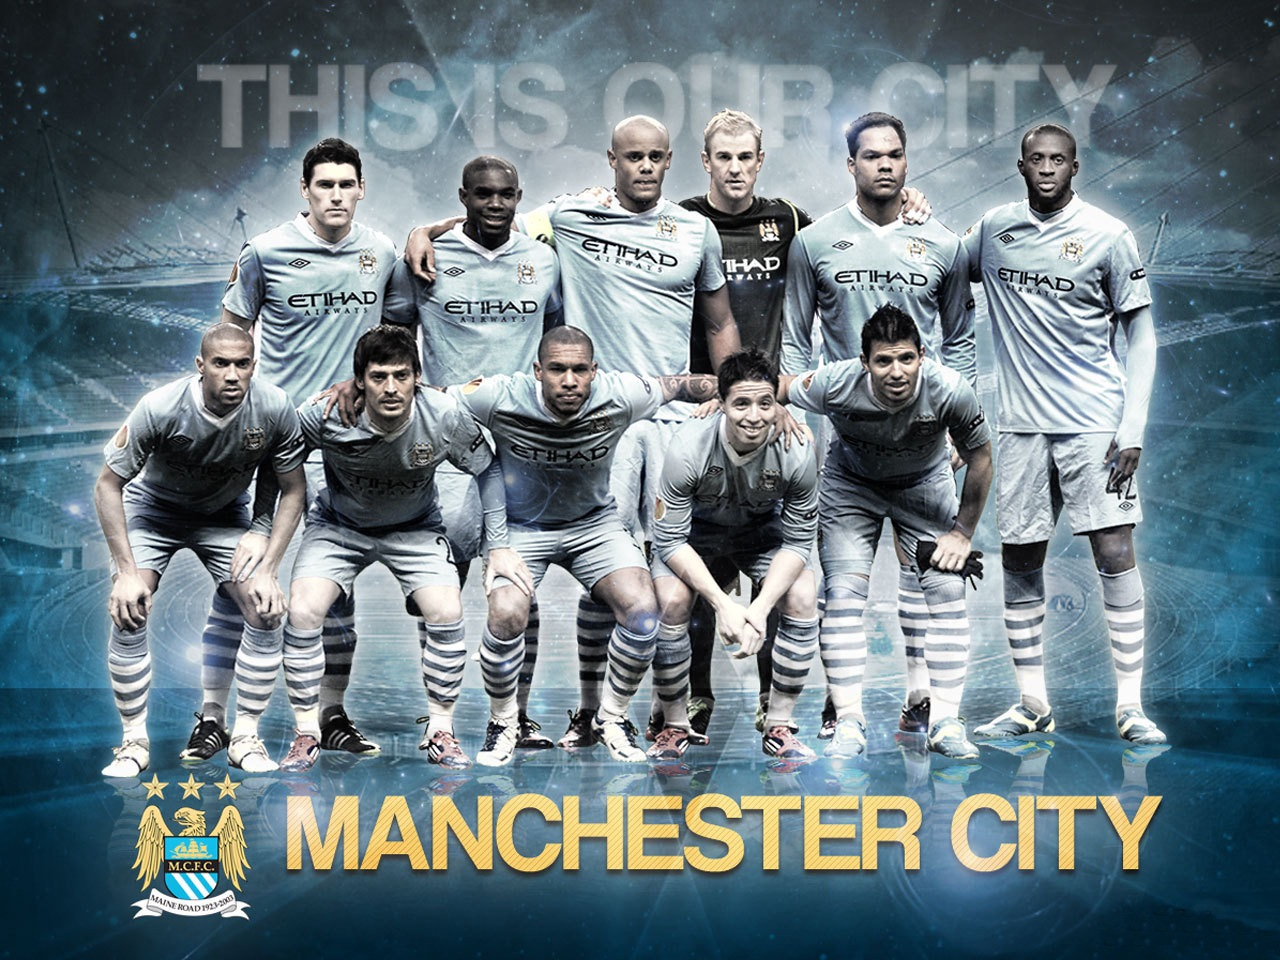 Man City: All Wallpapers: Manchester City Football Club Wallpapers